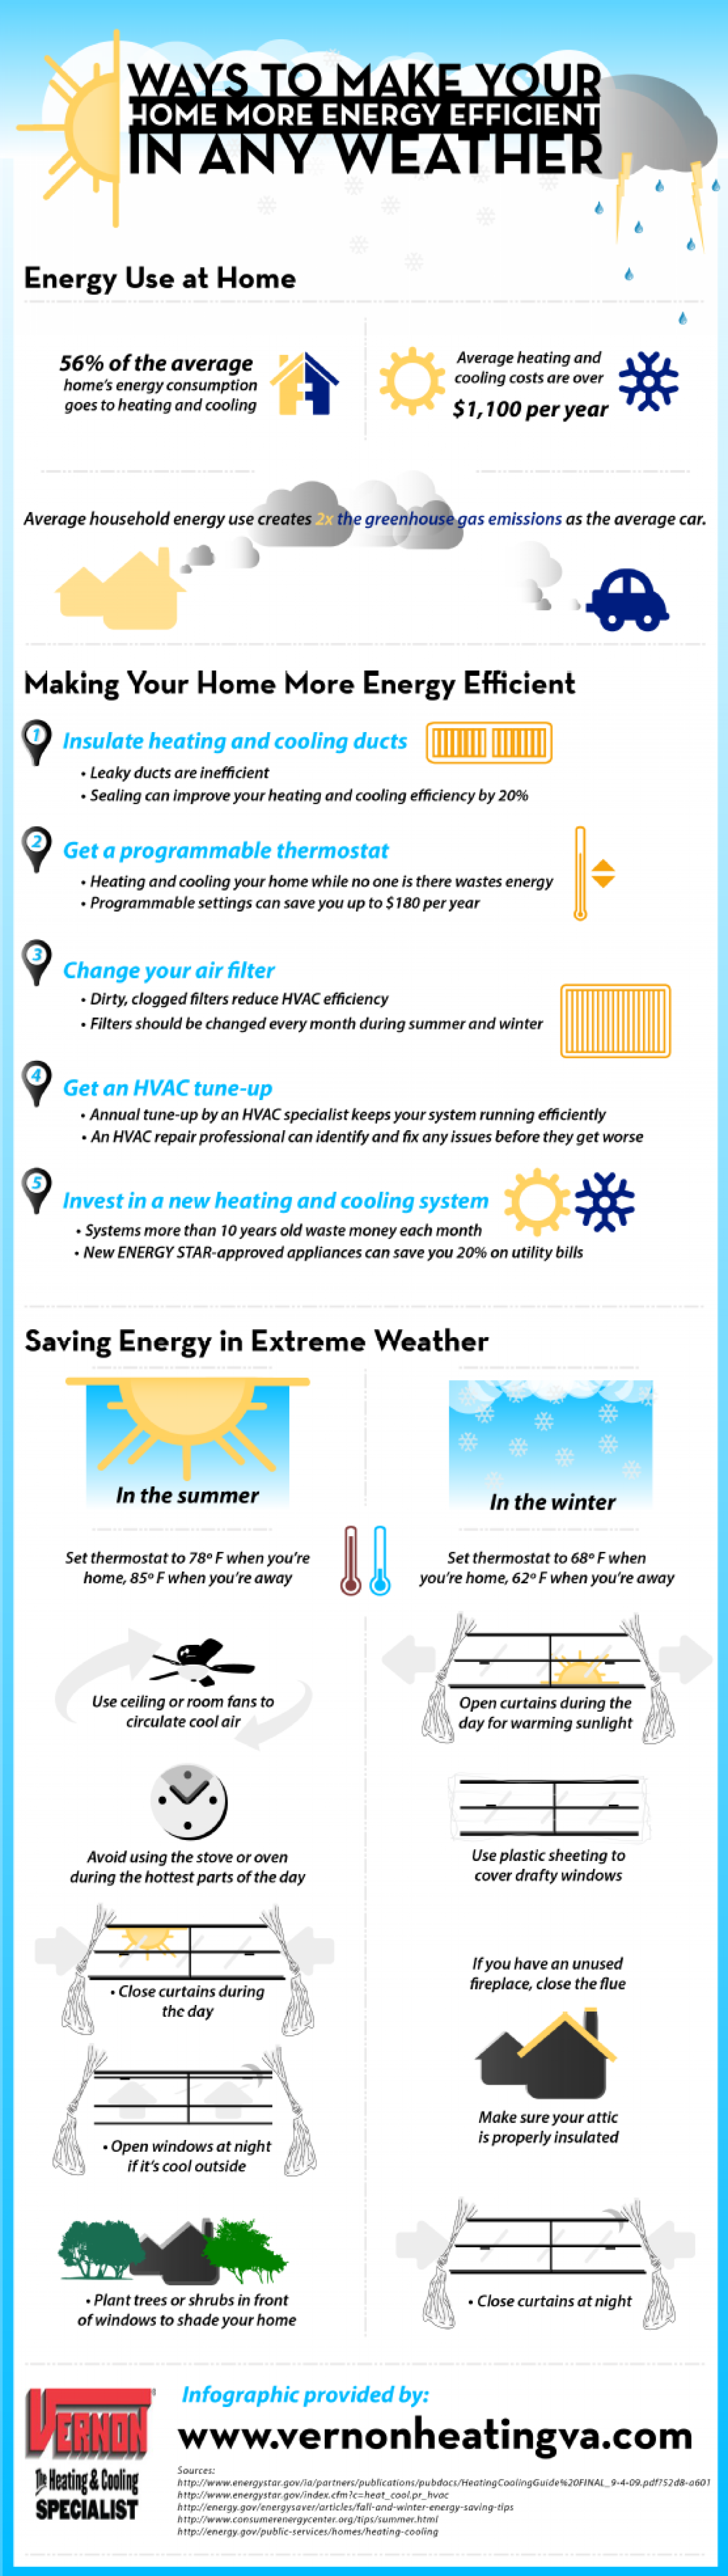 Ways to Make Your Home More Energy Efficient in Any Weather Infographic